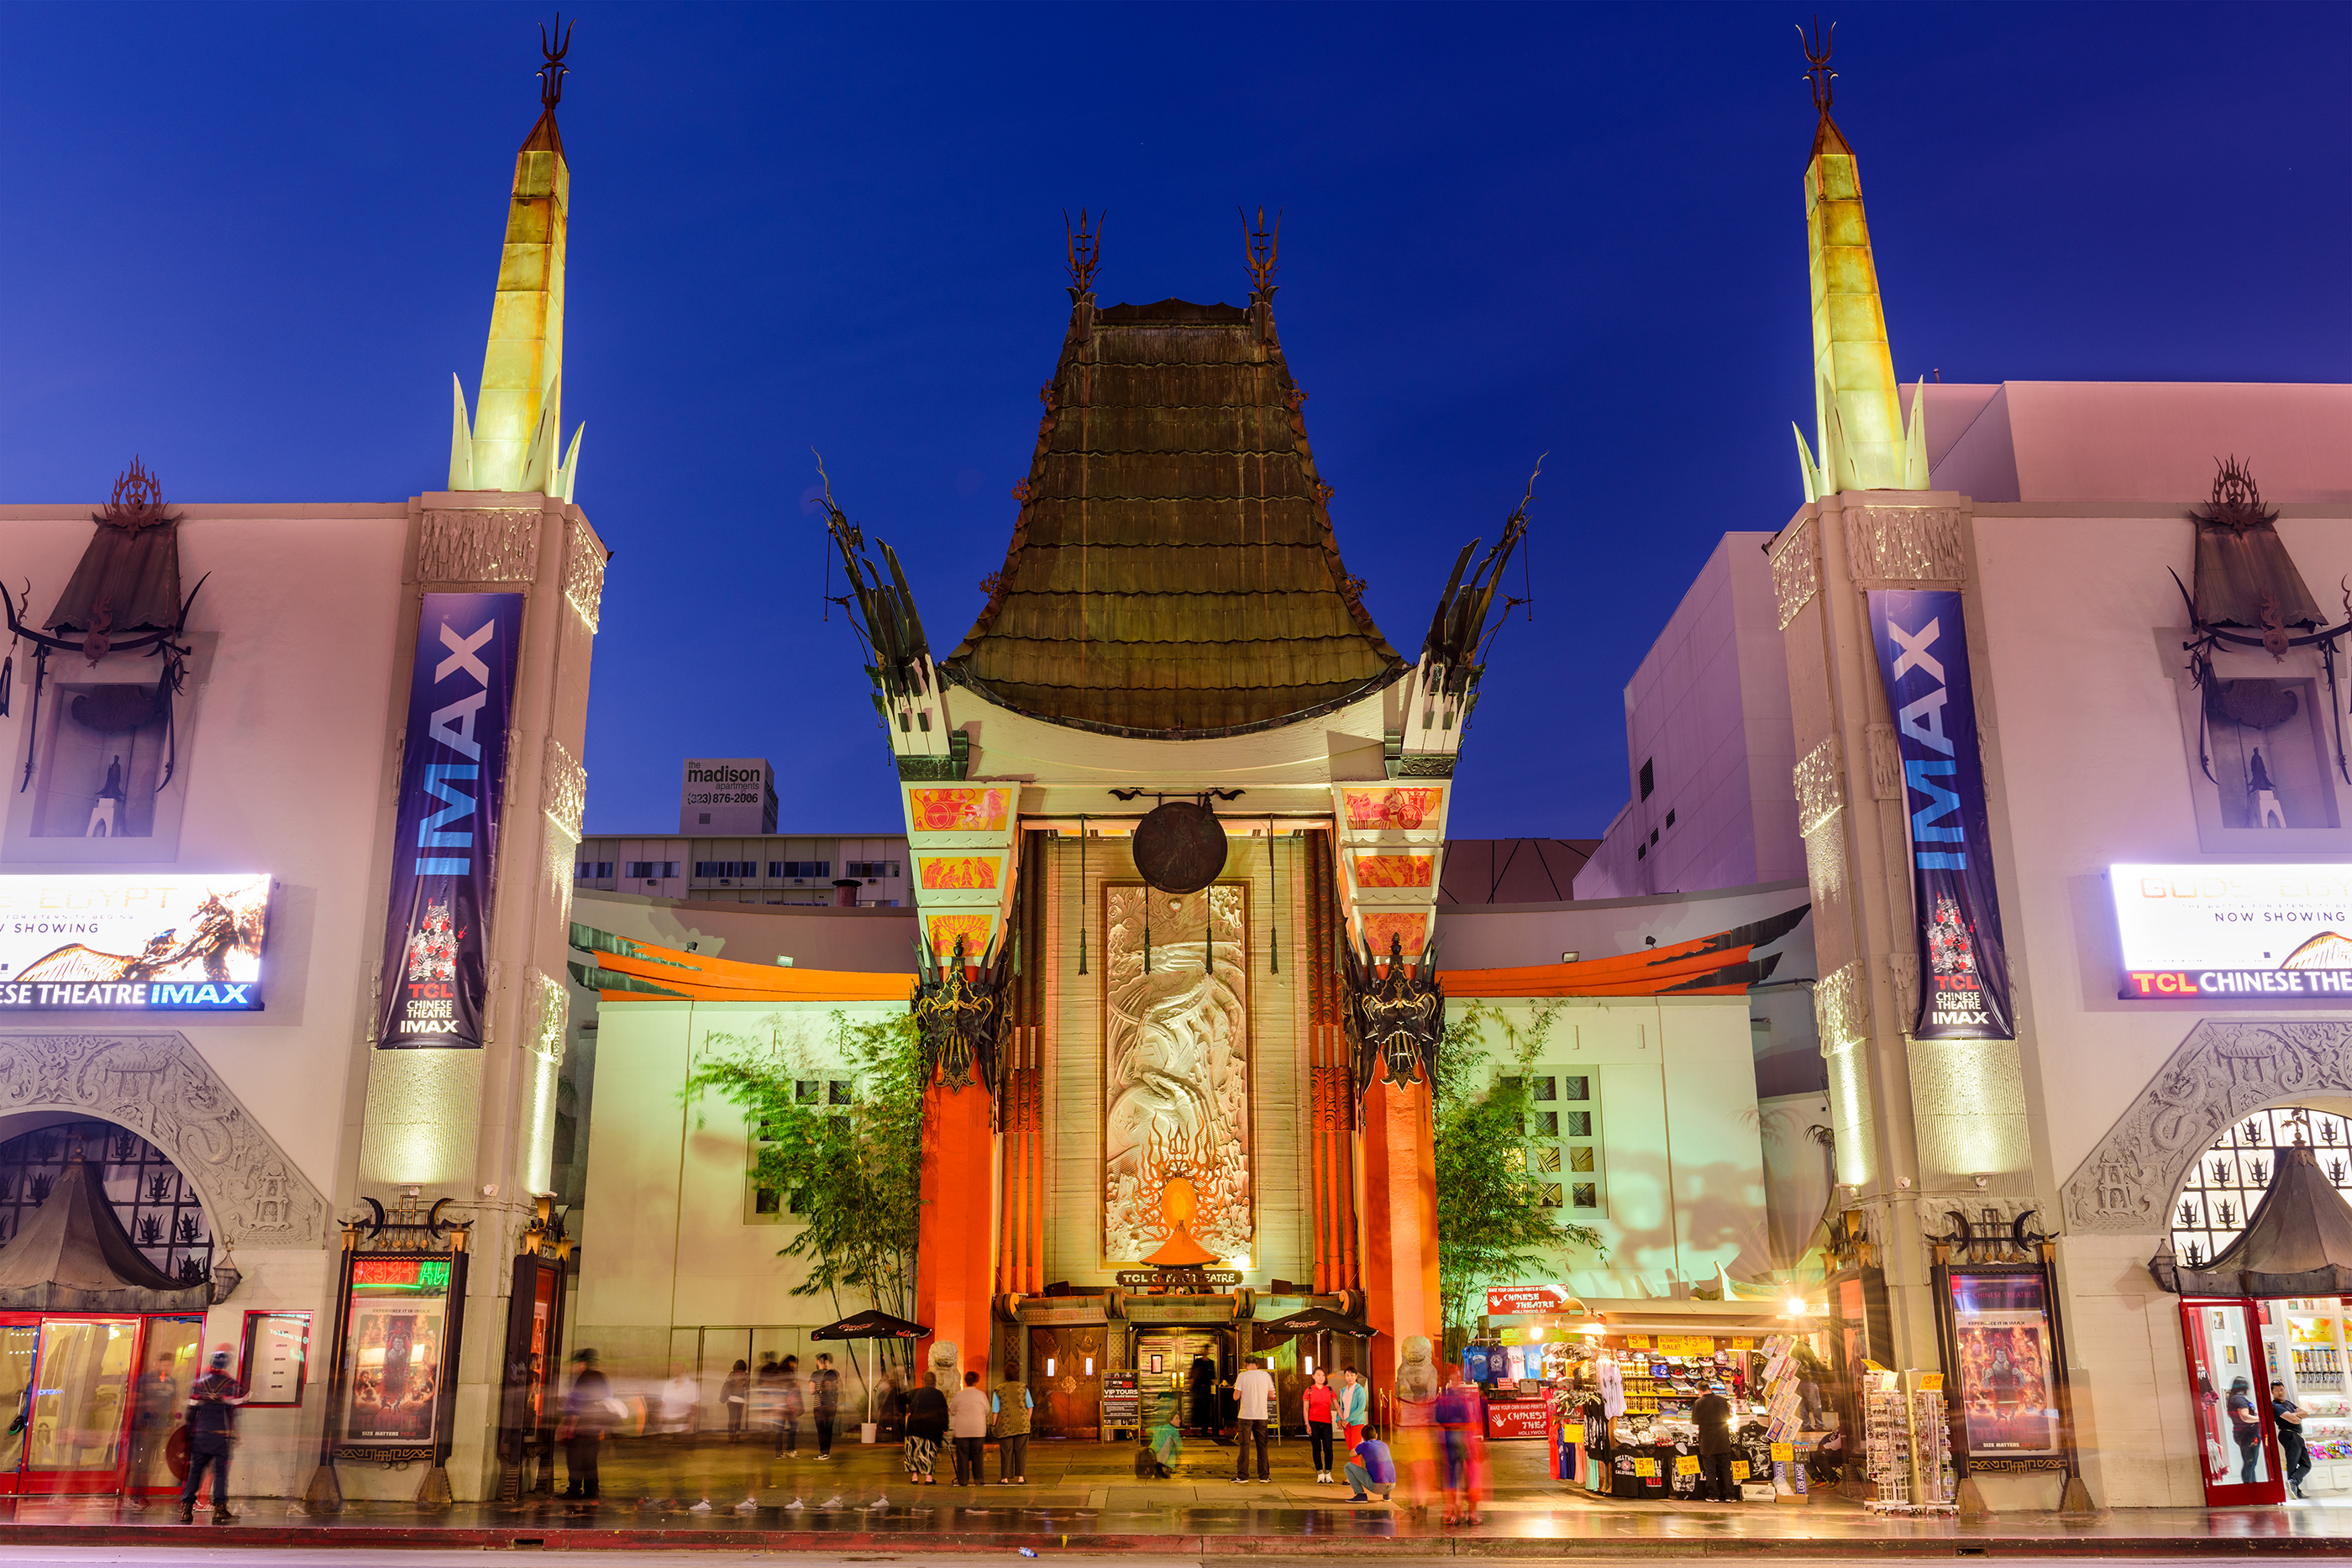 170815-route-66-graumans-chinese-theater-hollywood-boulevard